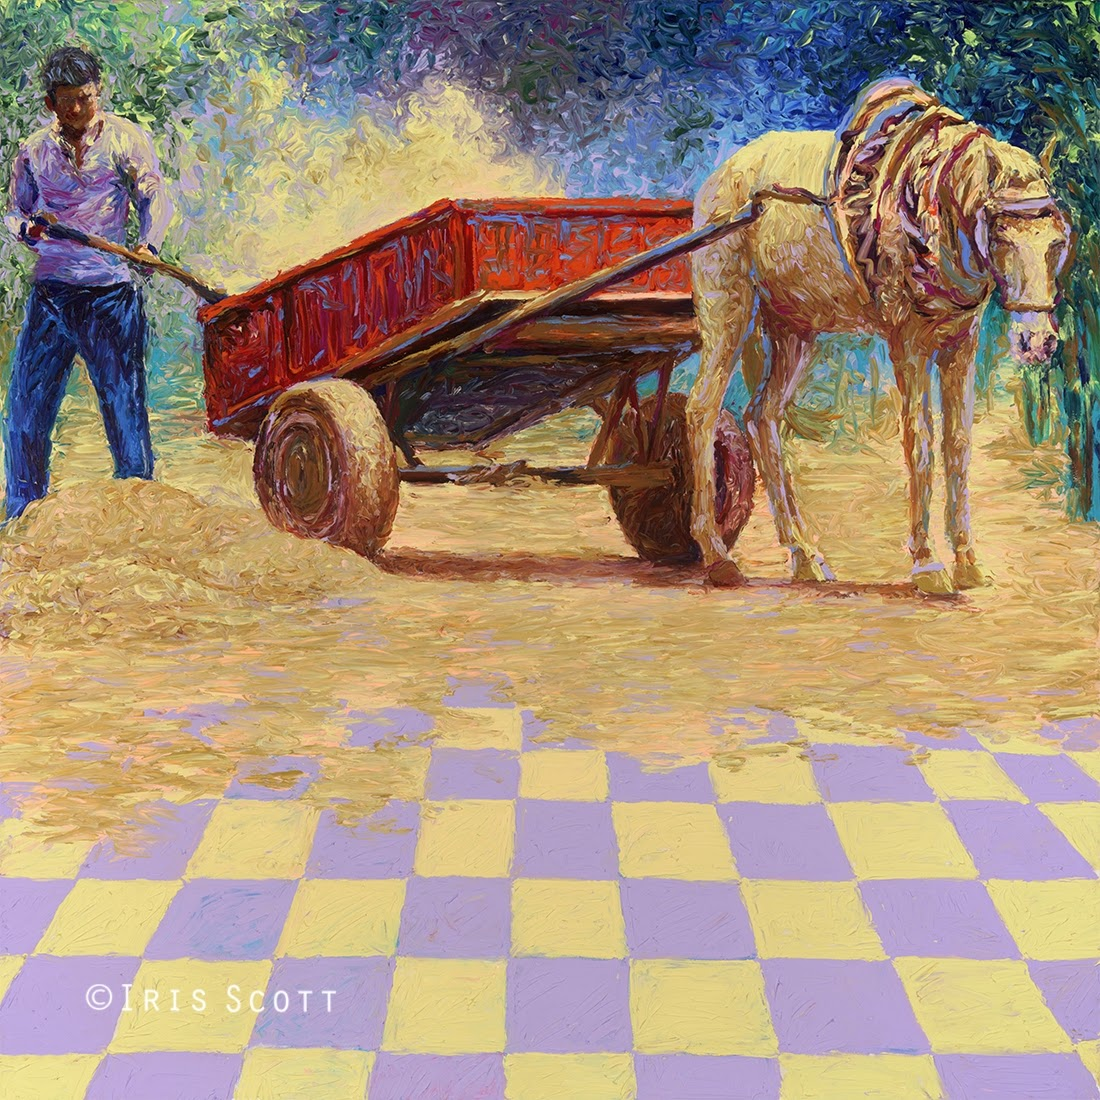 04-Dusty-Horse-Cart-Iris-Scott-Finger-Painting-Fine-Art-www-designstack-co